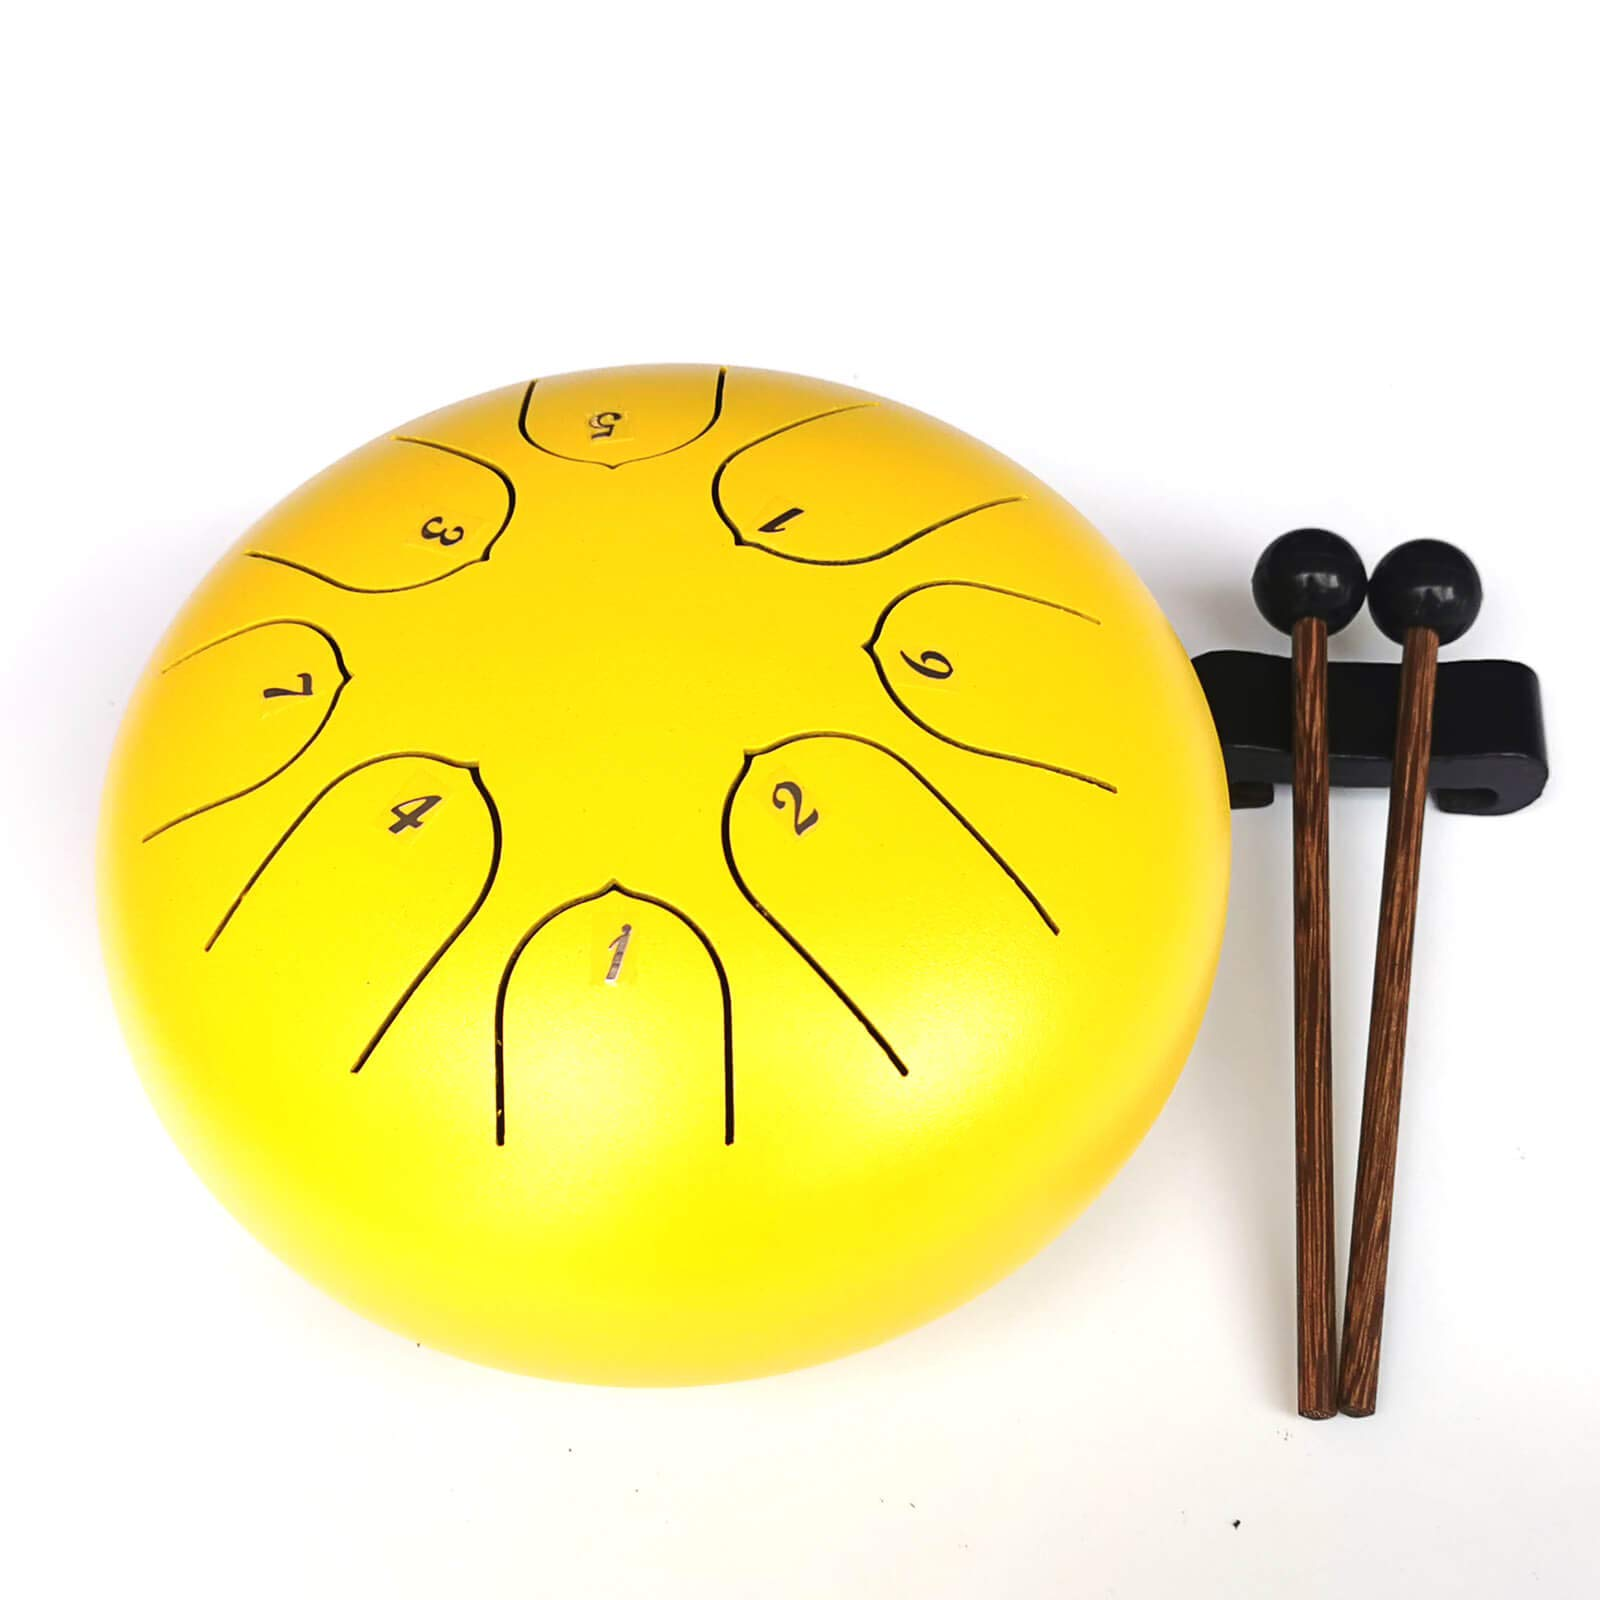 REGIS Steel Tongue Drum 8 Notes 6 Inches Chakra Tank Drum Steel Percussion Padded Travel Bag and Mallets (Yellow)